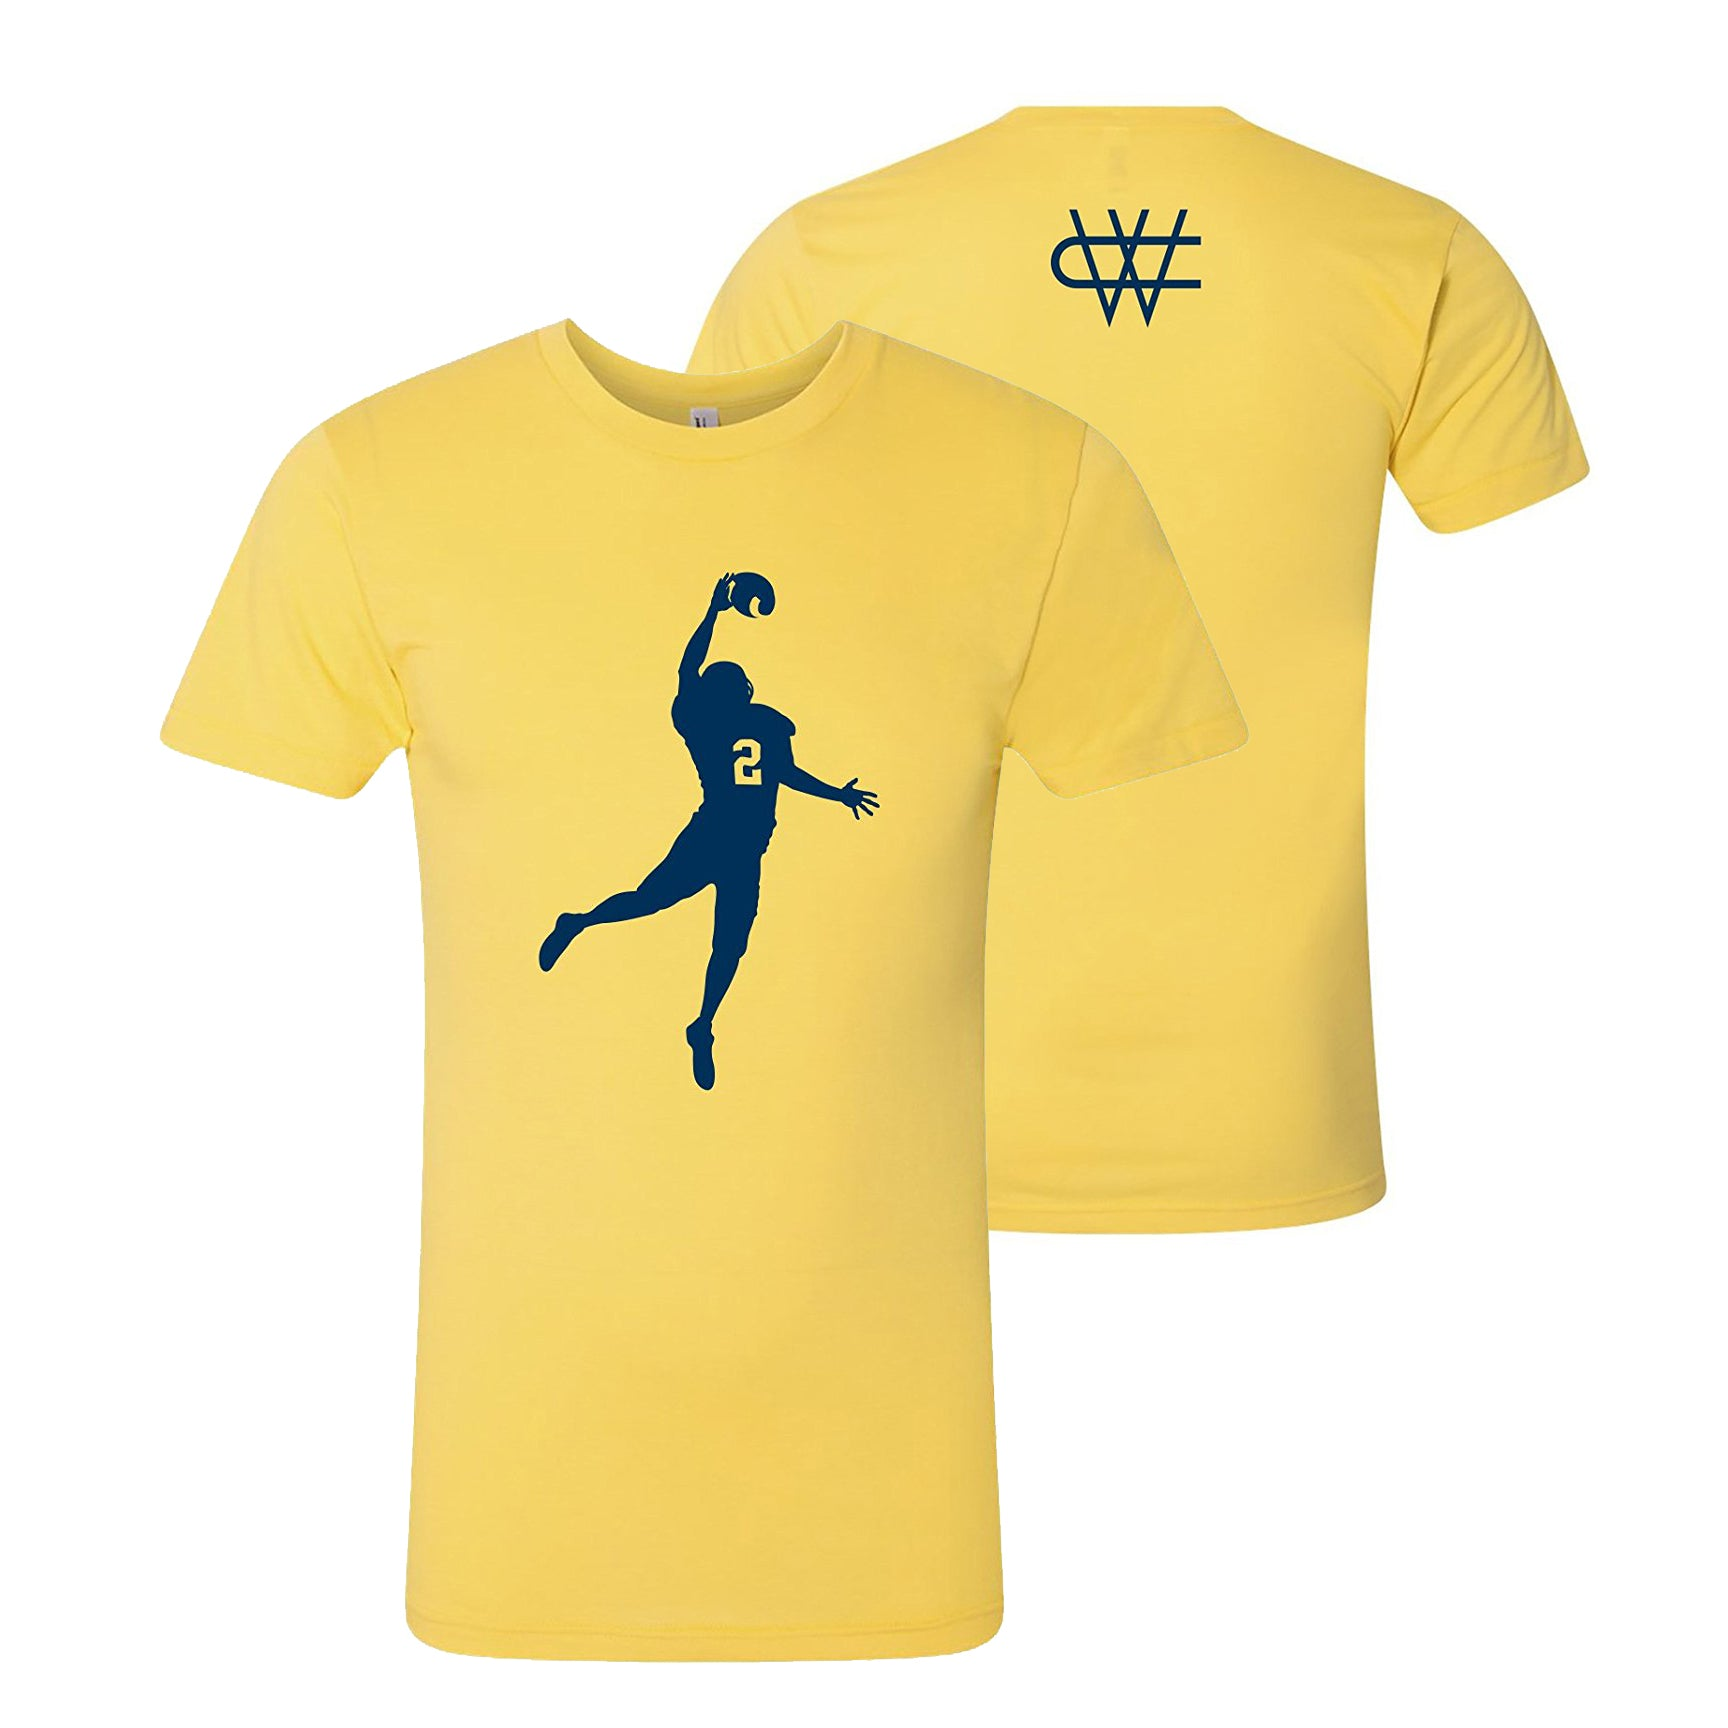 uk availability 31e55 a8c33 Charles Woodson The Pick University of Michigan American Apparel  Poly-Cotton Short Sleeve T Shirt - Maize